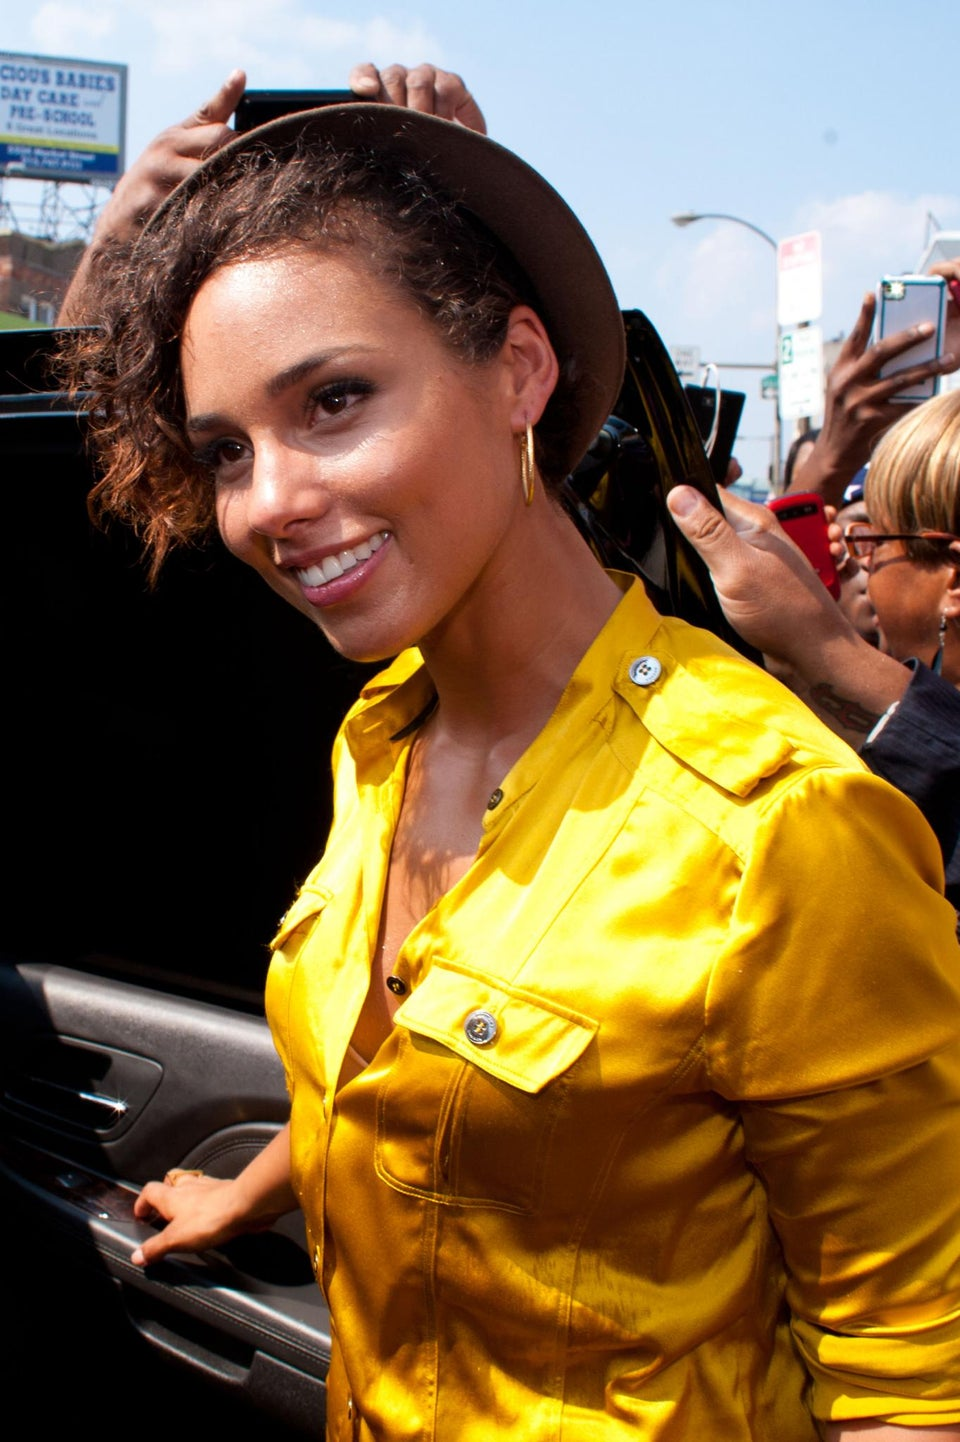 Will Alicia Keys' Son Appear on Her New Album?